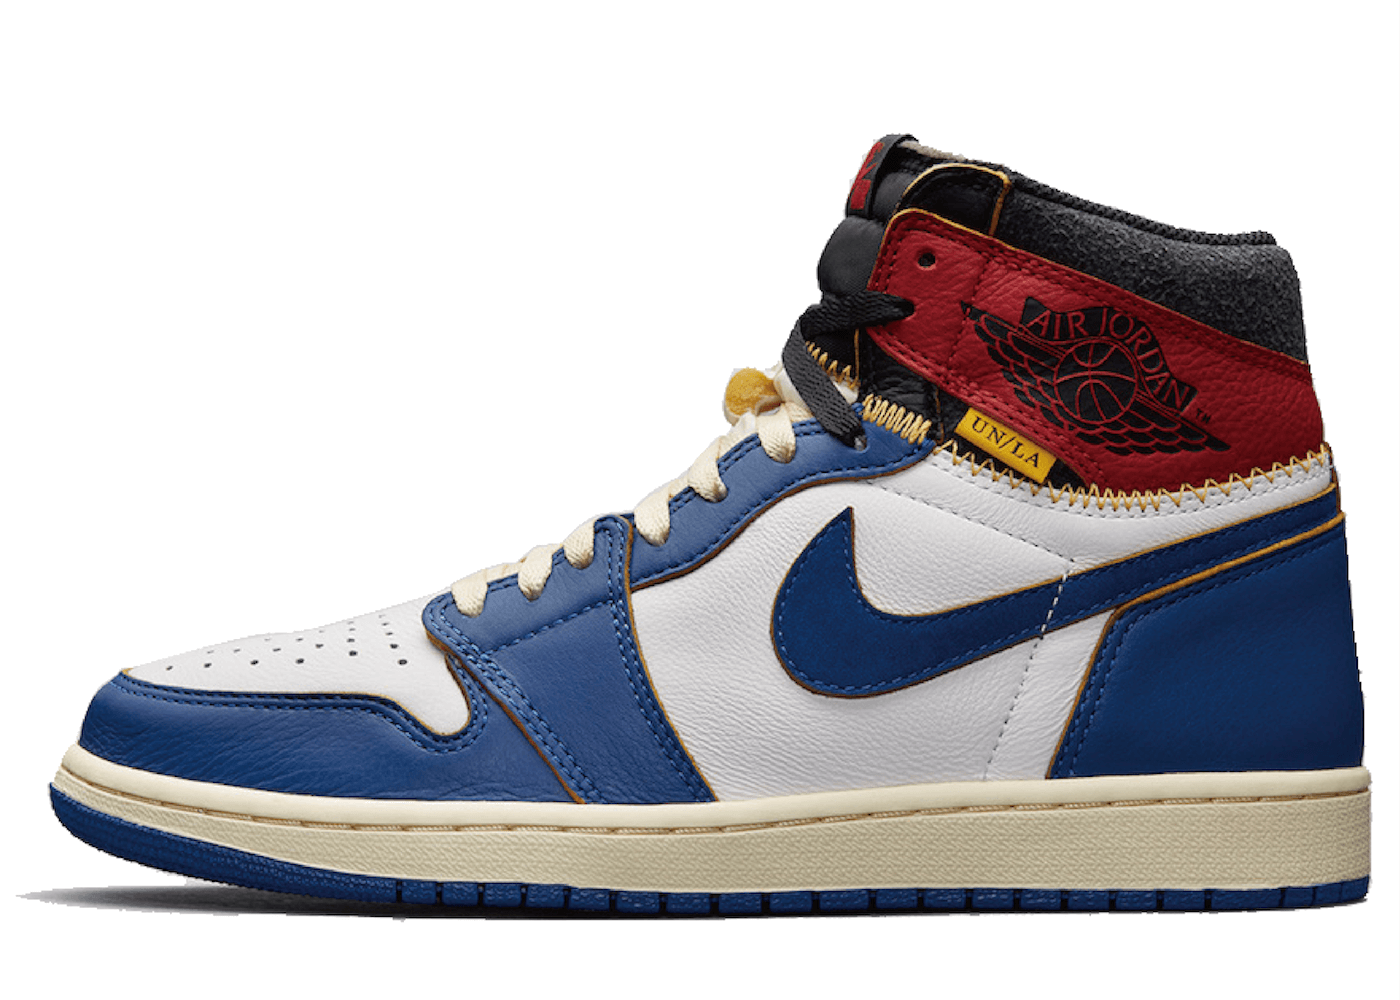 Union Los Angeles × Nike Air Jordan 1 Retro High Blue Toeの写真